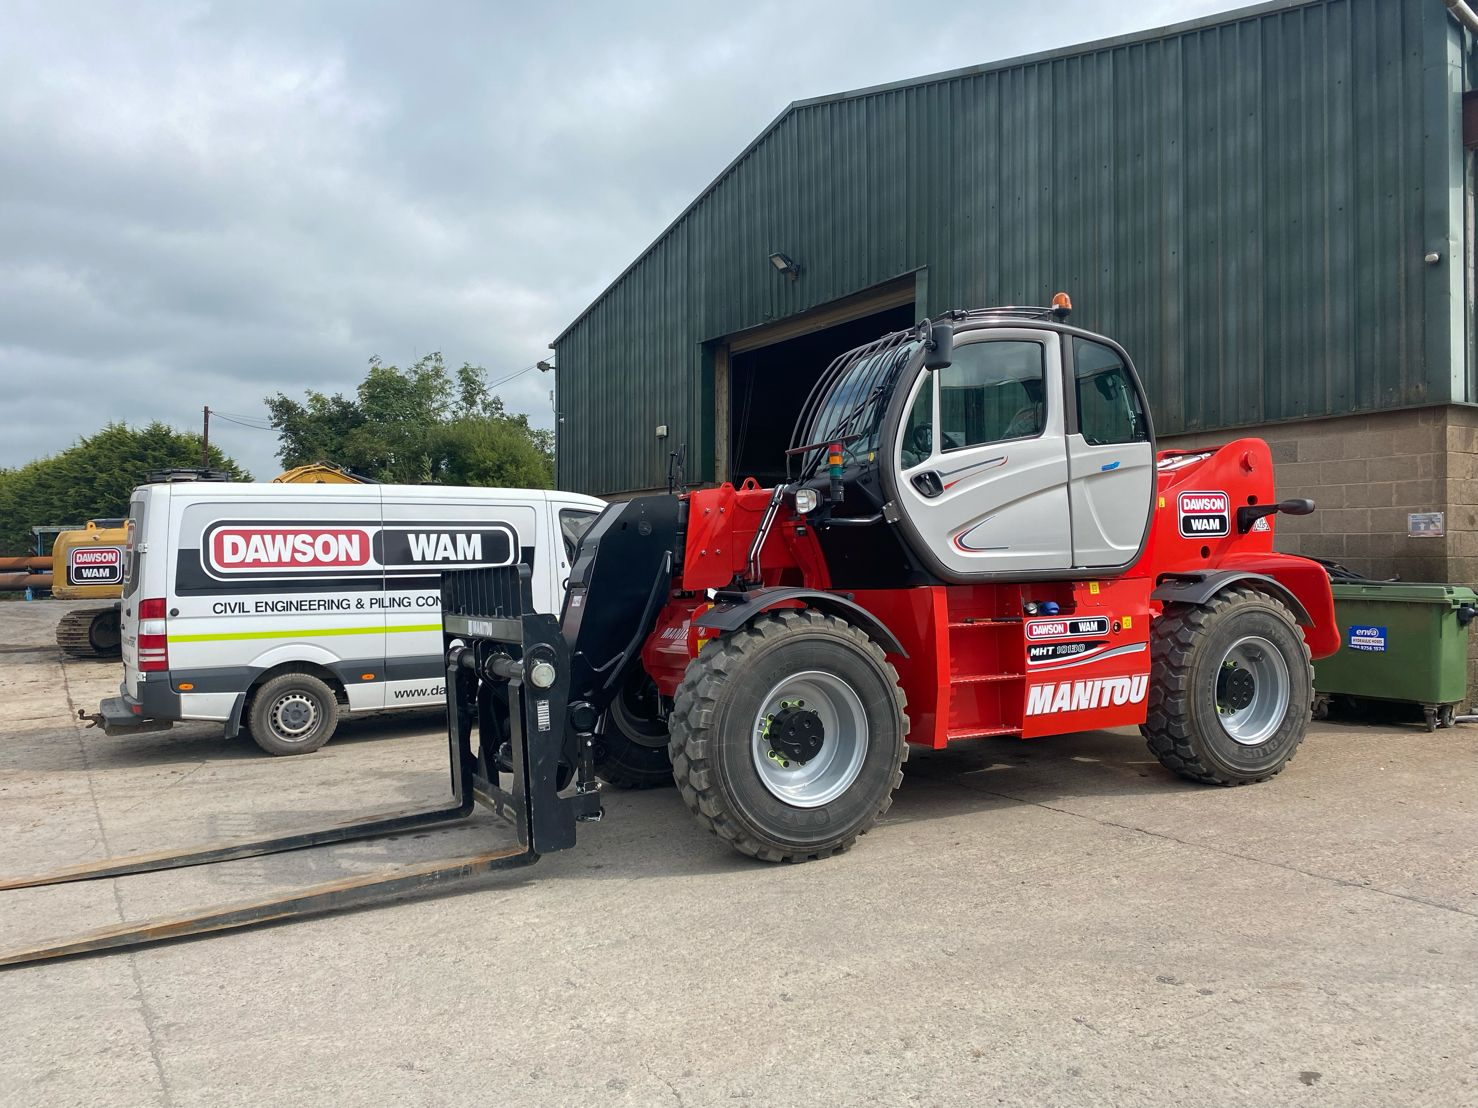 NEW 13ton Loadall for our Bedfordshire Yard